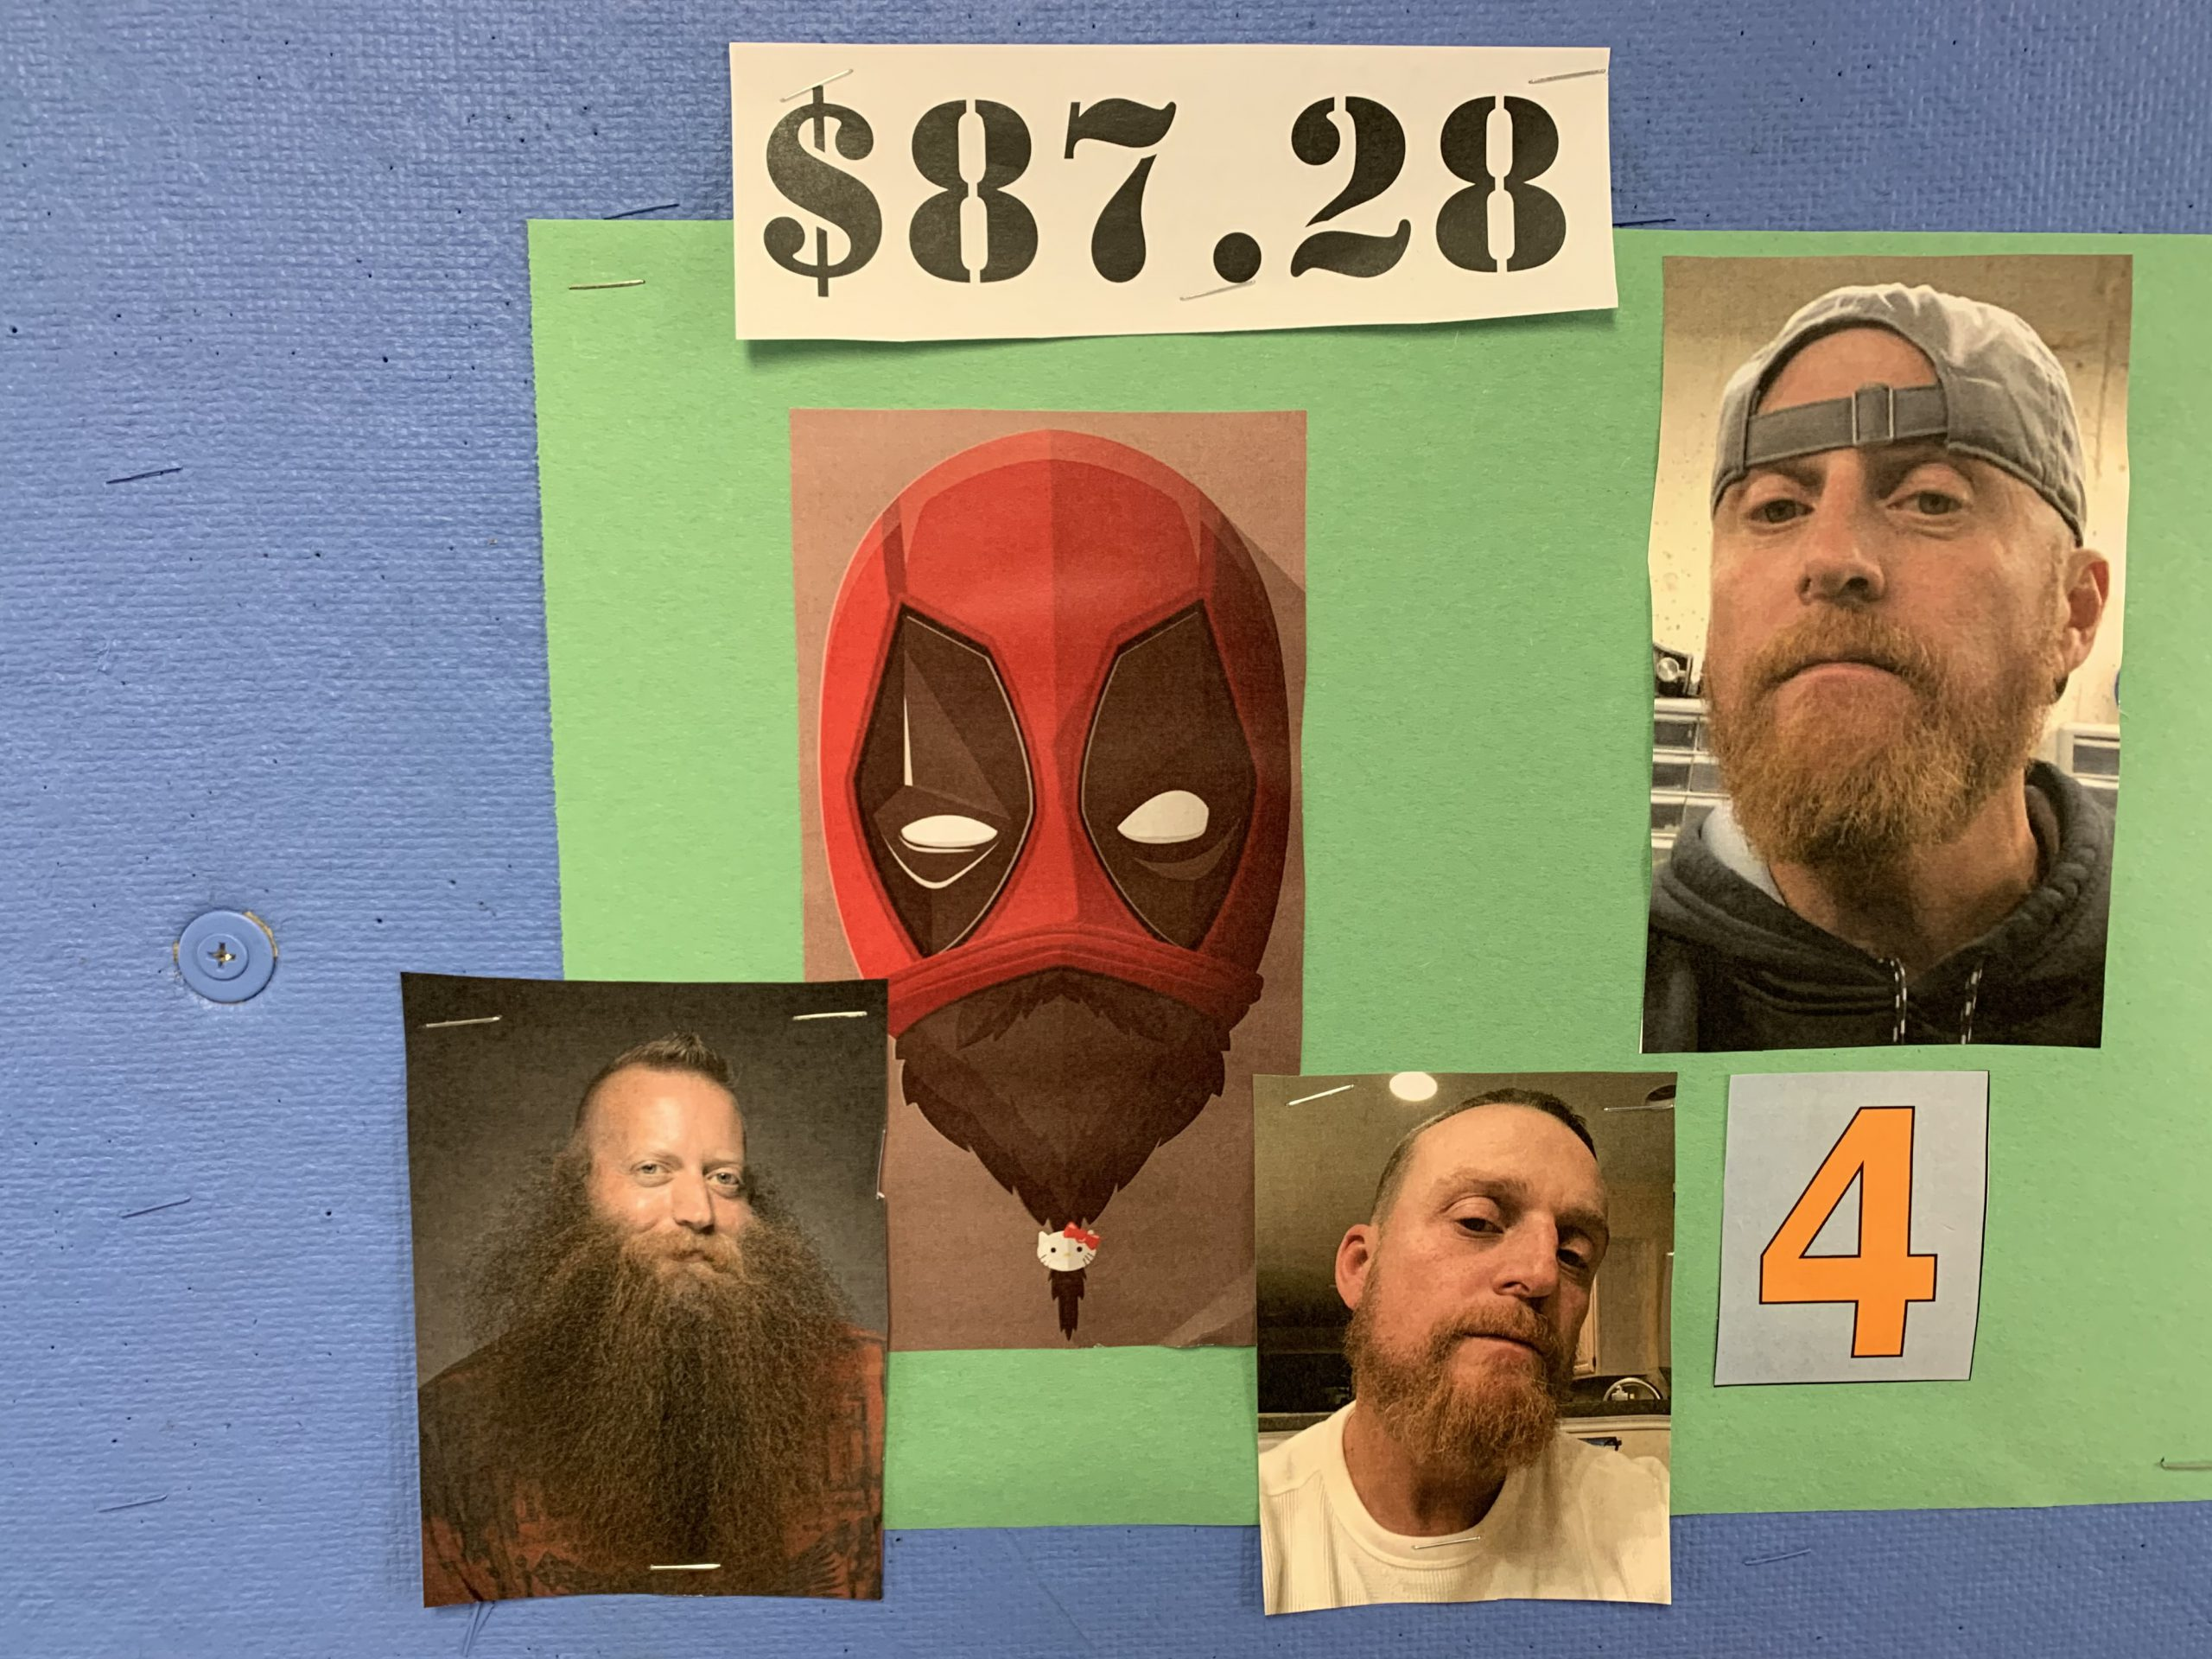 bulletin board with pictures of man growing a beard